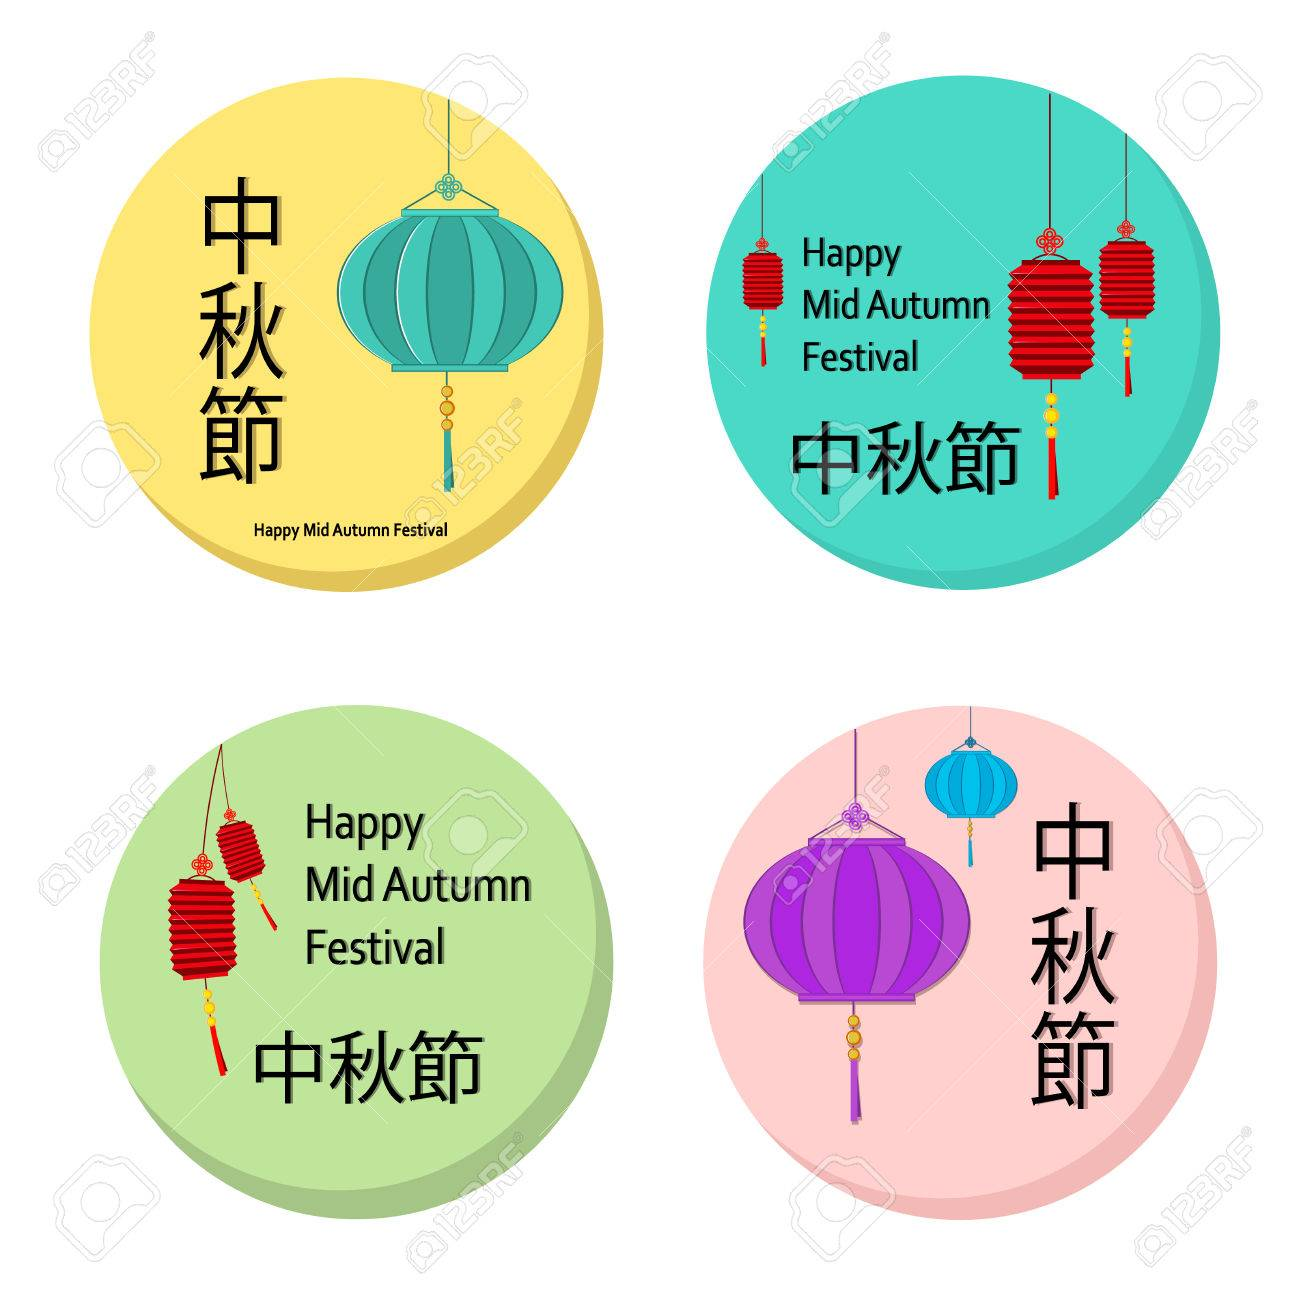 Mid Autumn Festival Greeting Cards Set Of Four Illustrations